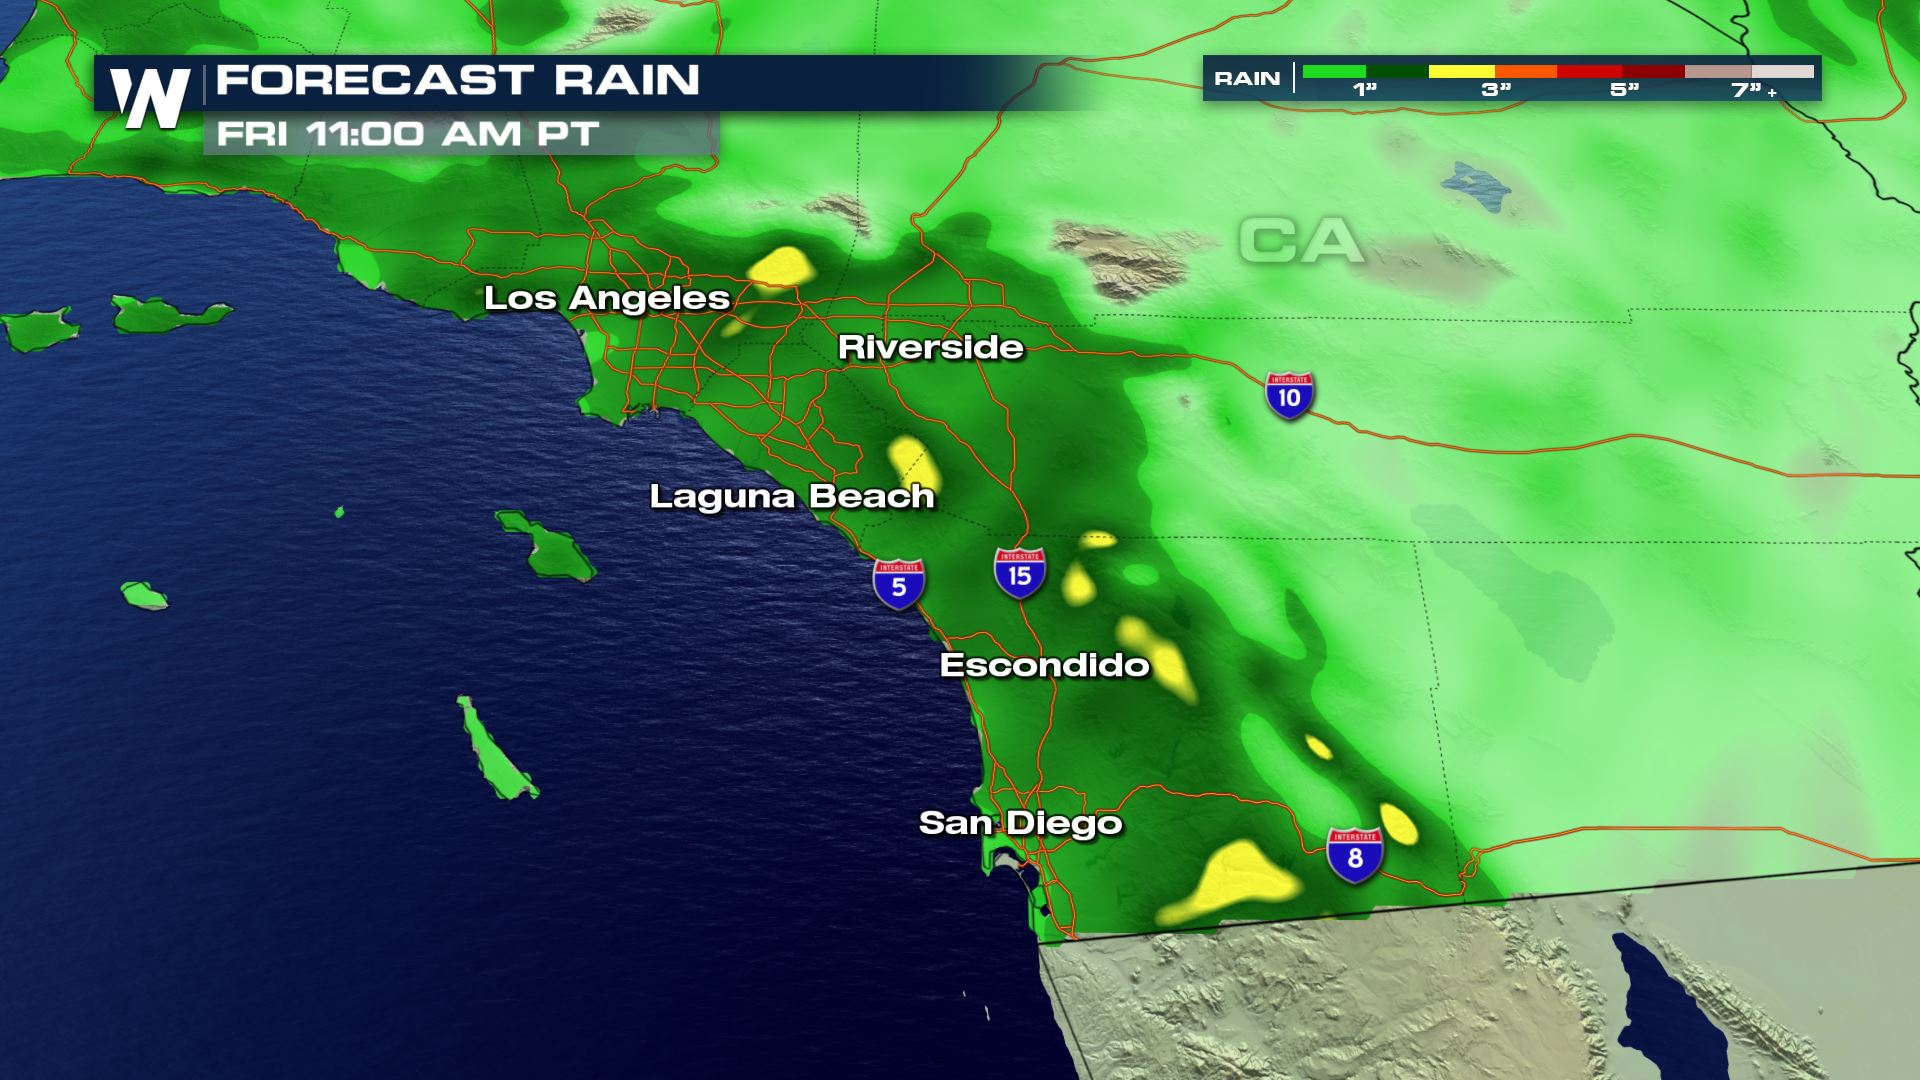 Heavy Rain for Southern California Wednesday and Thursday